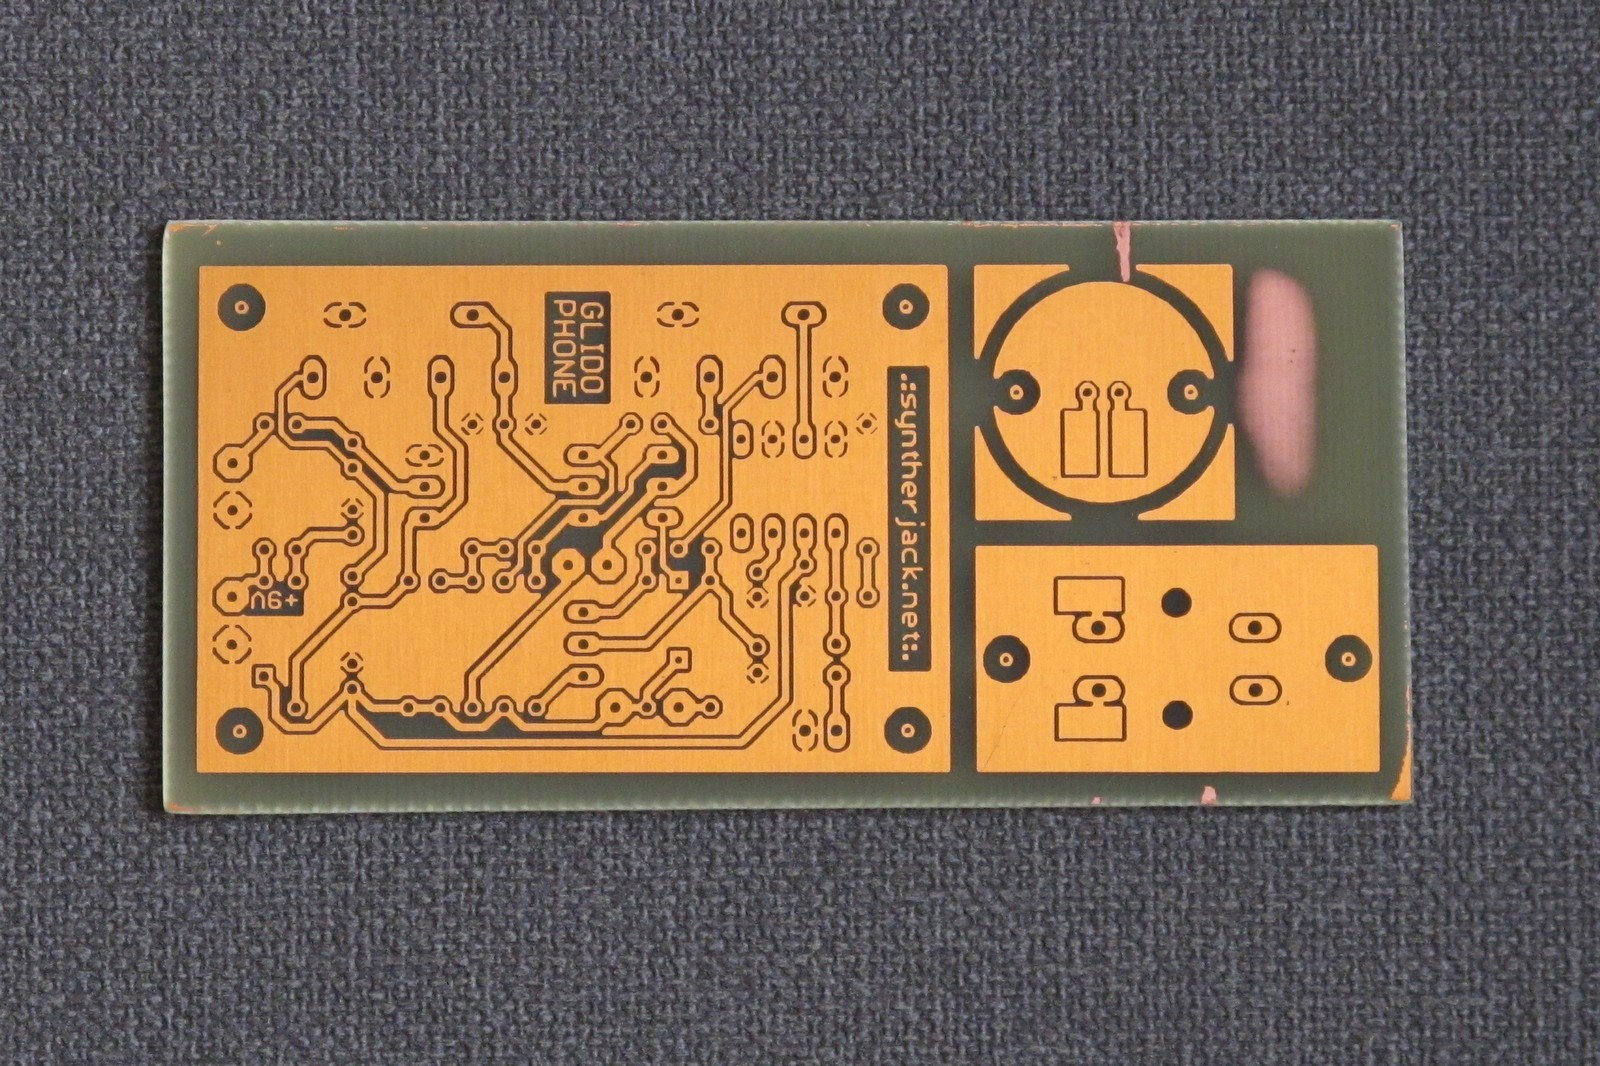 Etched Glidophone PCBs